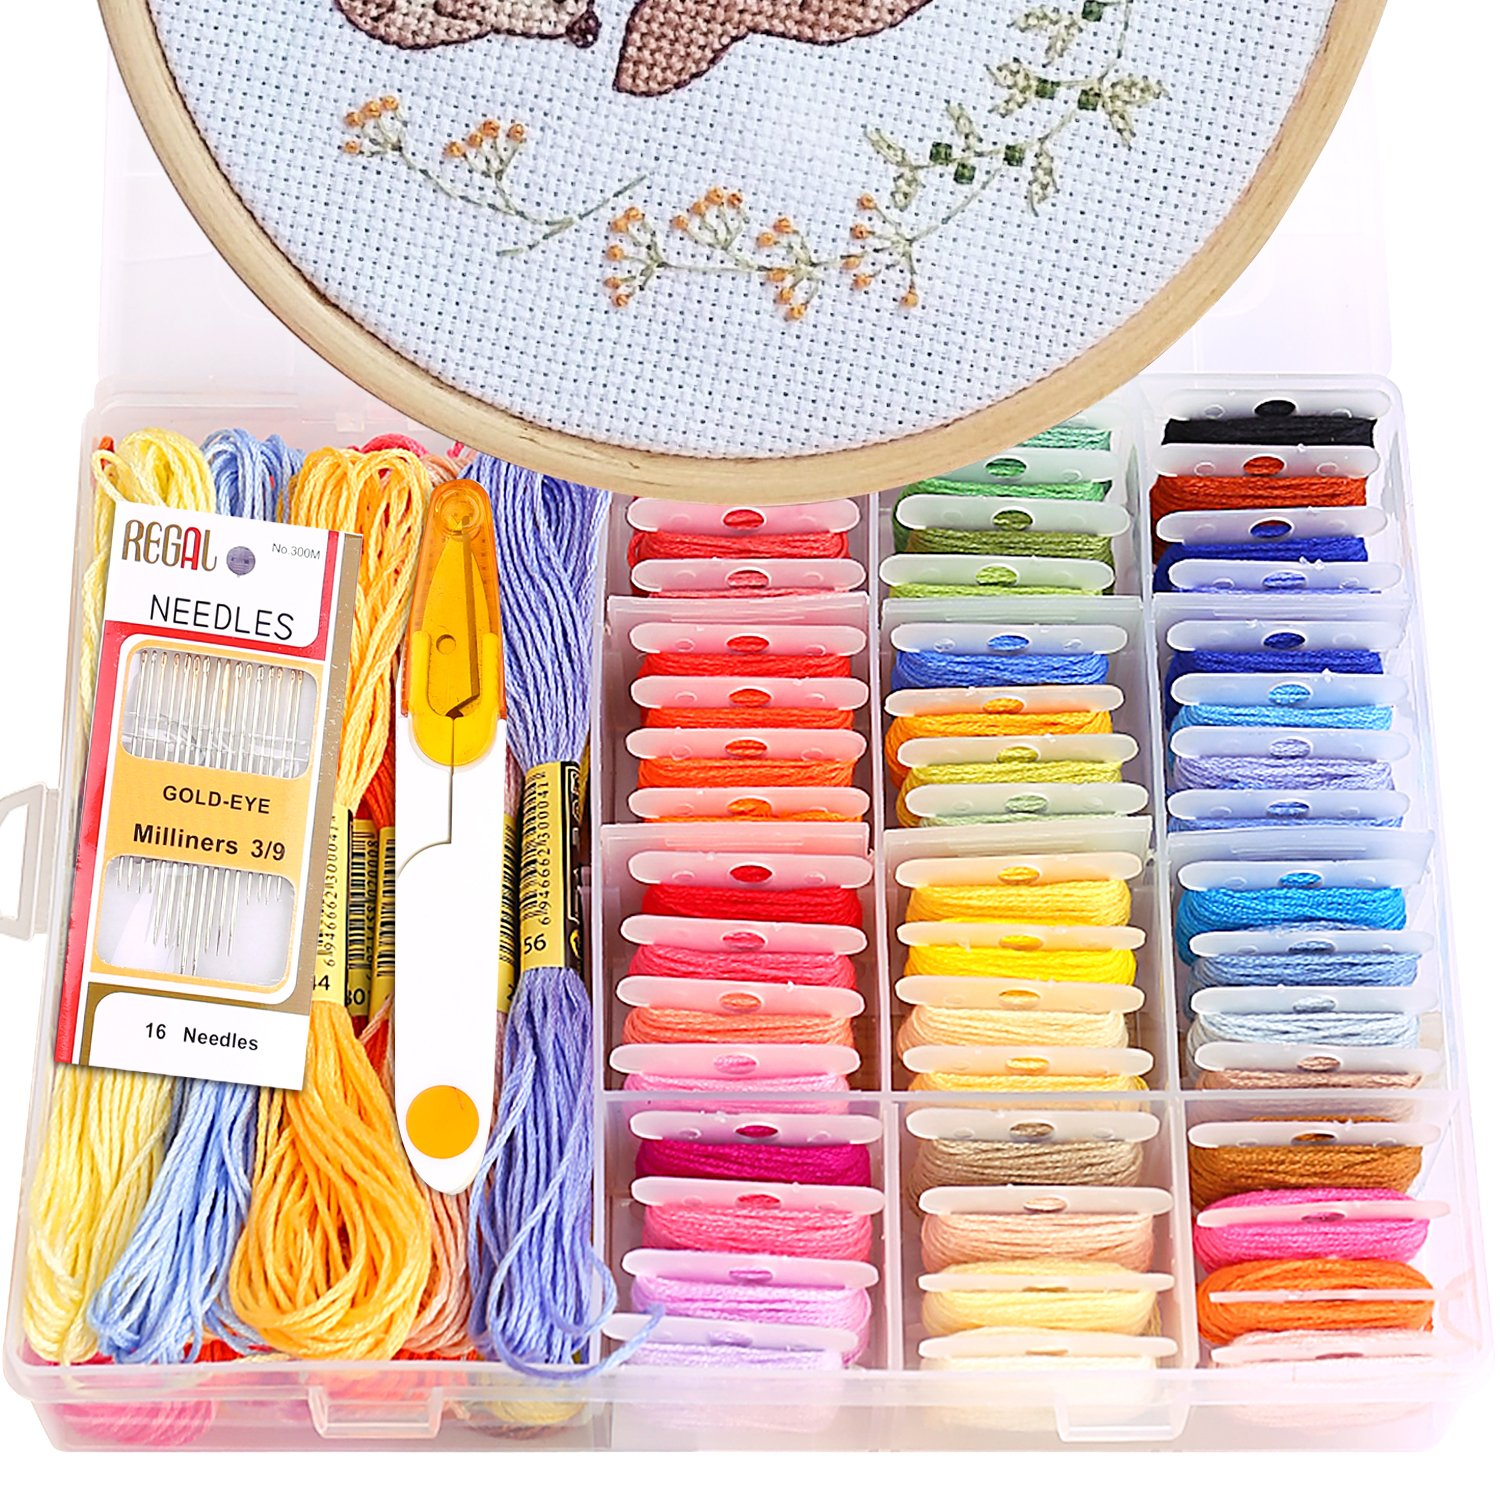 Innocheer Embroidery Starter Kit, Cross Stitch Kits for Beginners with Storage Box, 50 Color Threads, 1 pcs Bamboo Cross Stitch Hoops, 1 Pieces 14 Count Cloth Reserve Aida and Cross Stitch Tools gogodirect 4336934169